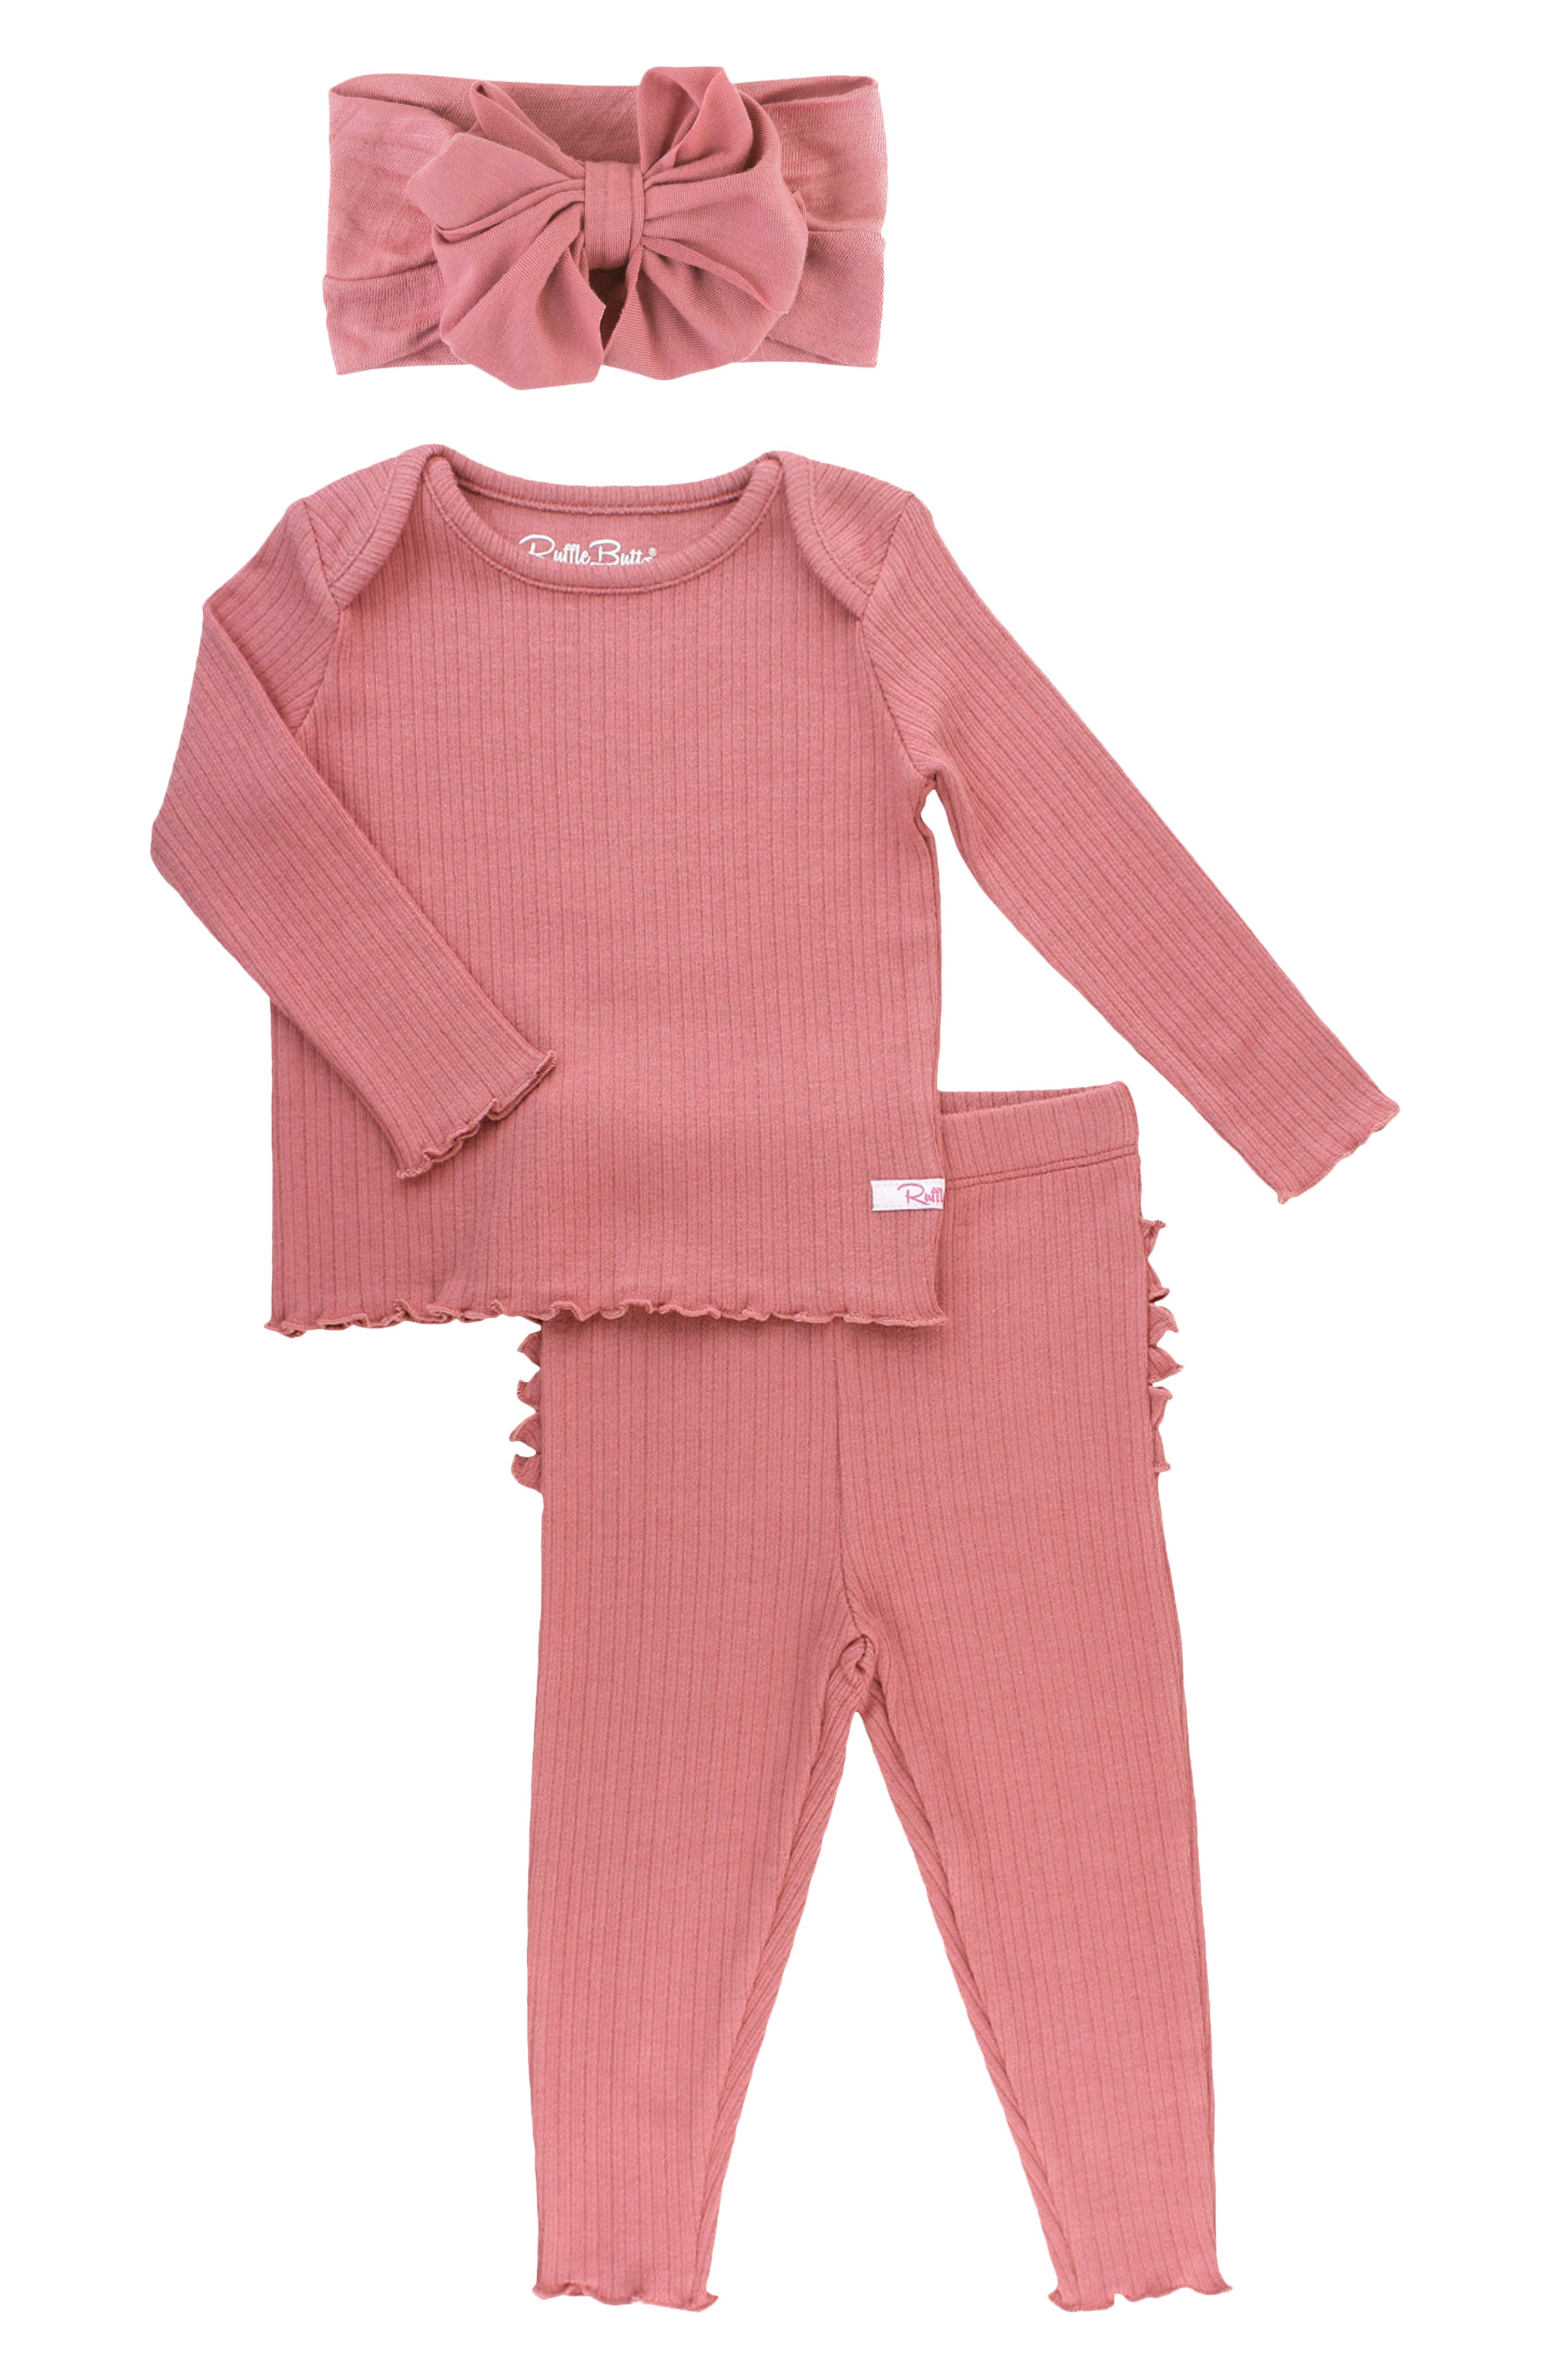 Send your little one sweetly off to sleep with these snug two-piece ruffled pajamas finished with a coordinating head wrap. Style Name: Rufflebutts Mauve Fitted Two-Piece Pajamas & Head Wrap Set (Baby). Style Number: 6125781. Available in stores.